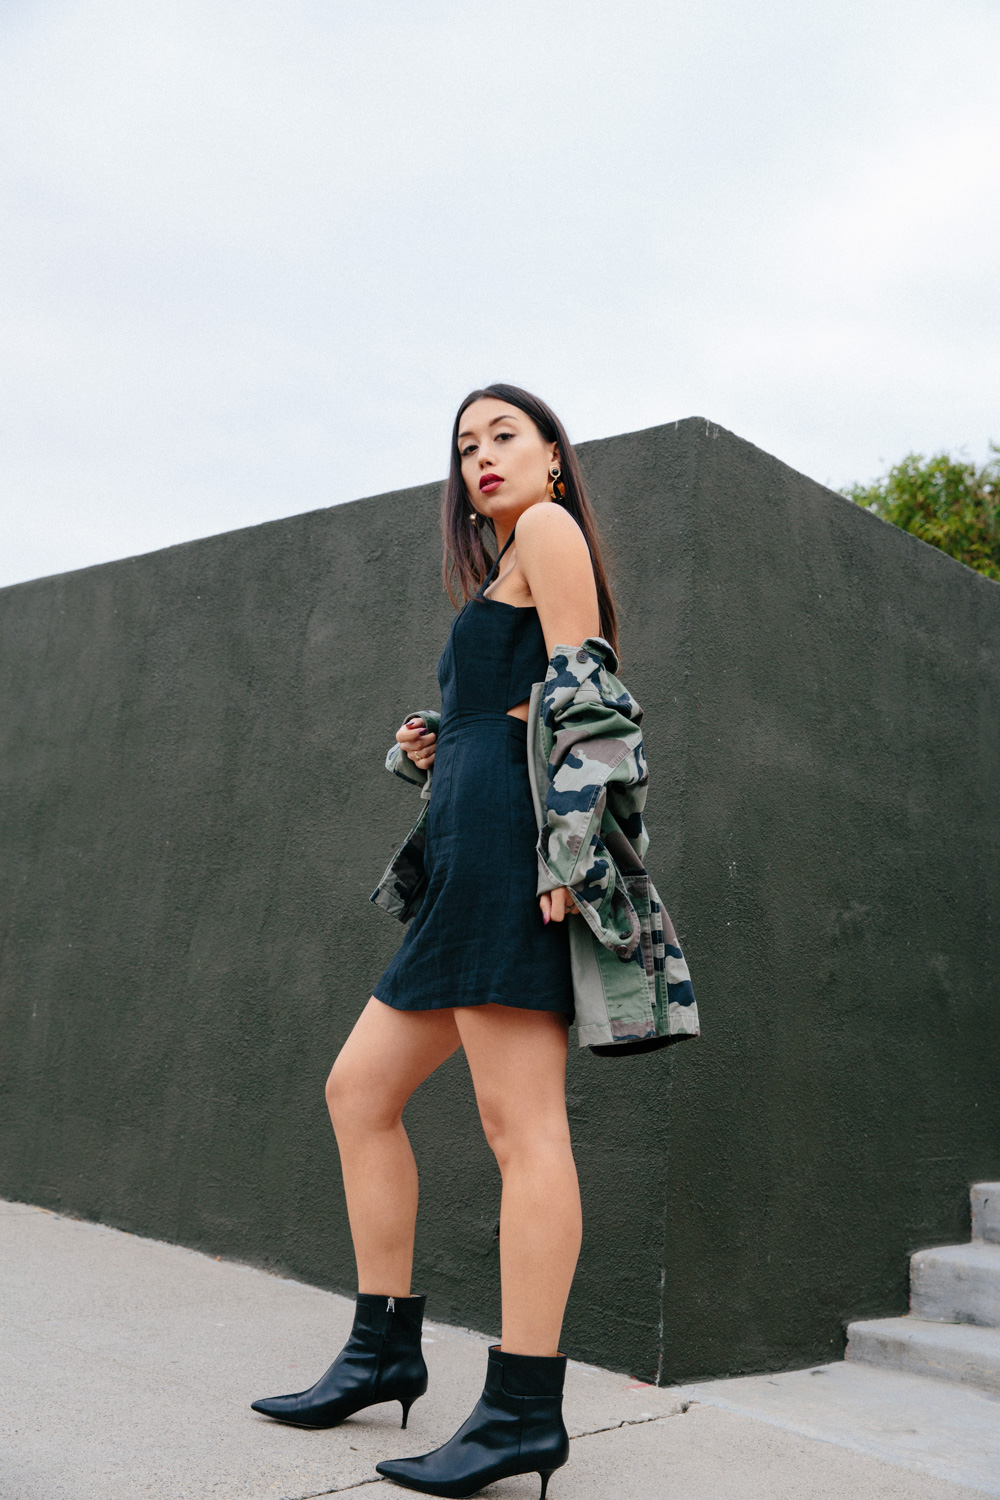 LOVE OR MONEY by Emily Tong wearing black mini dress camo jacket and black kitten boots